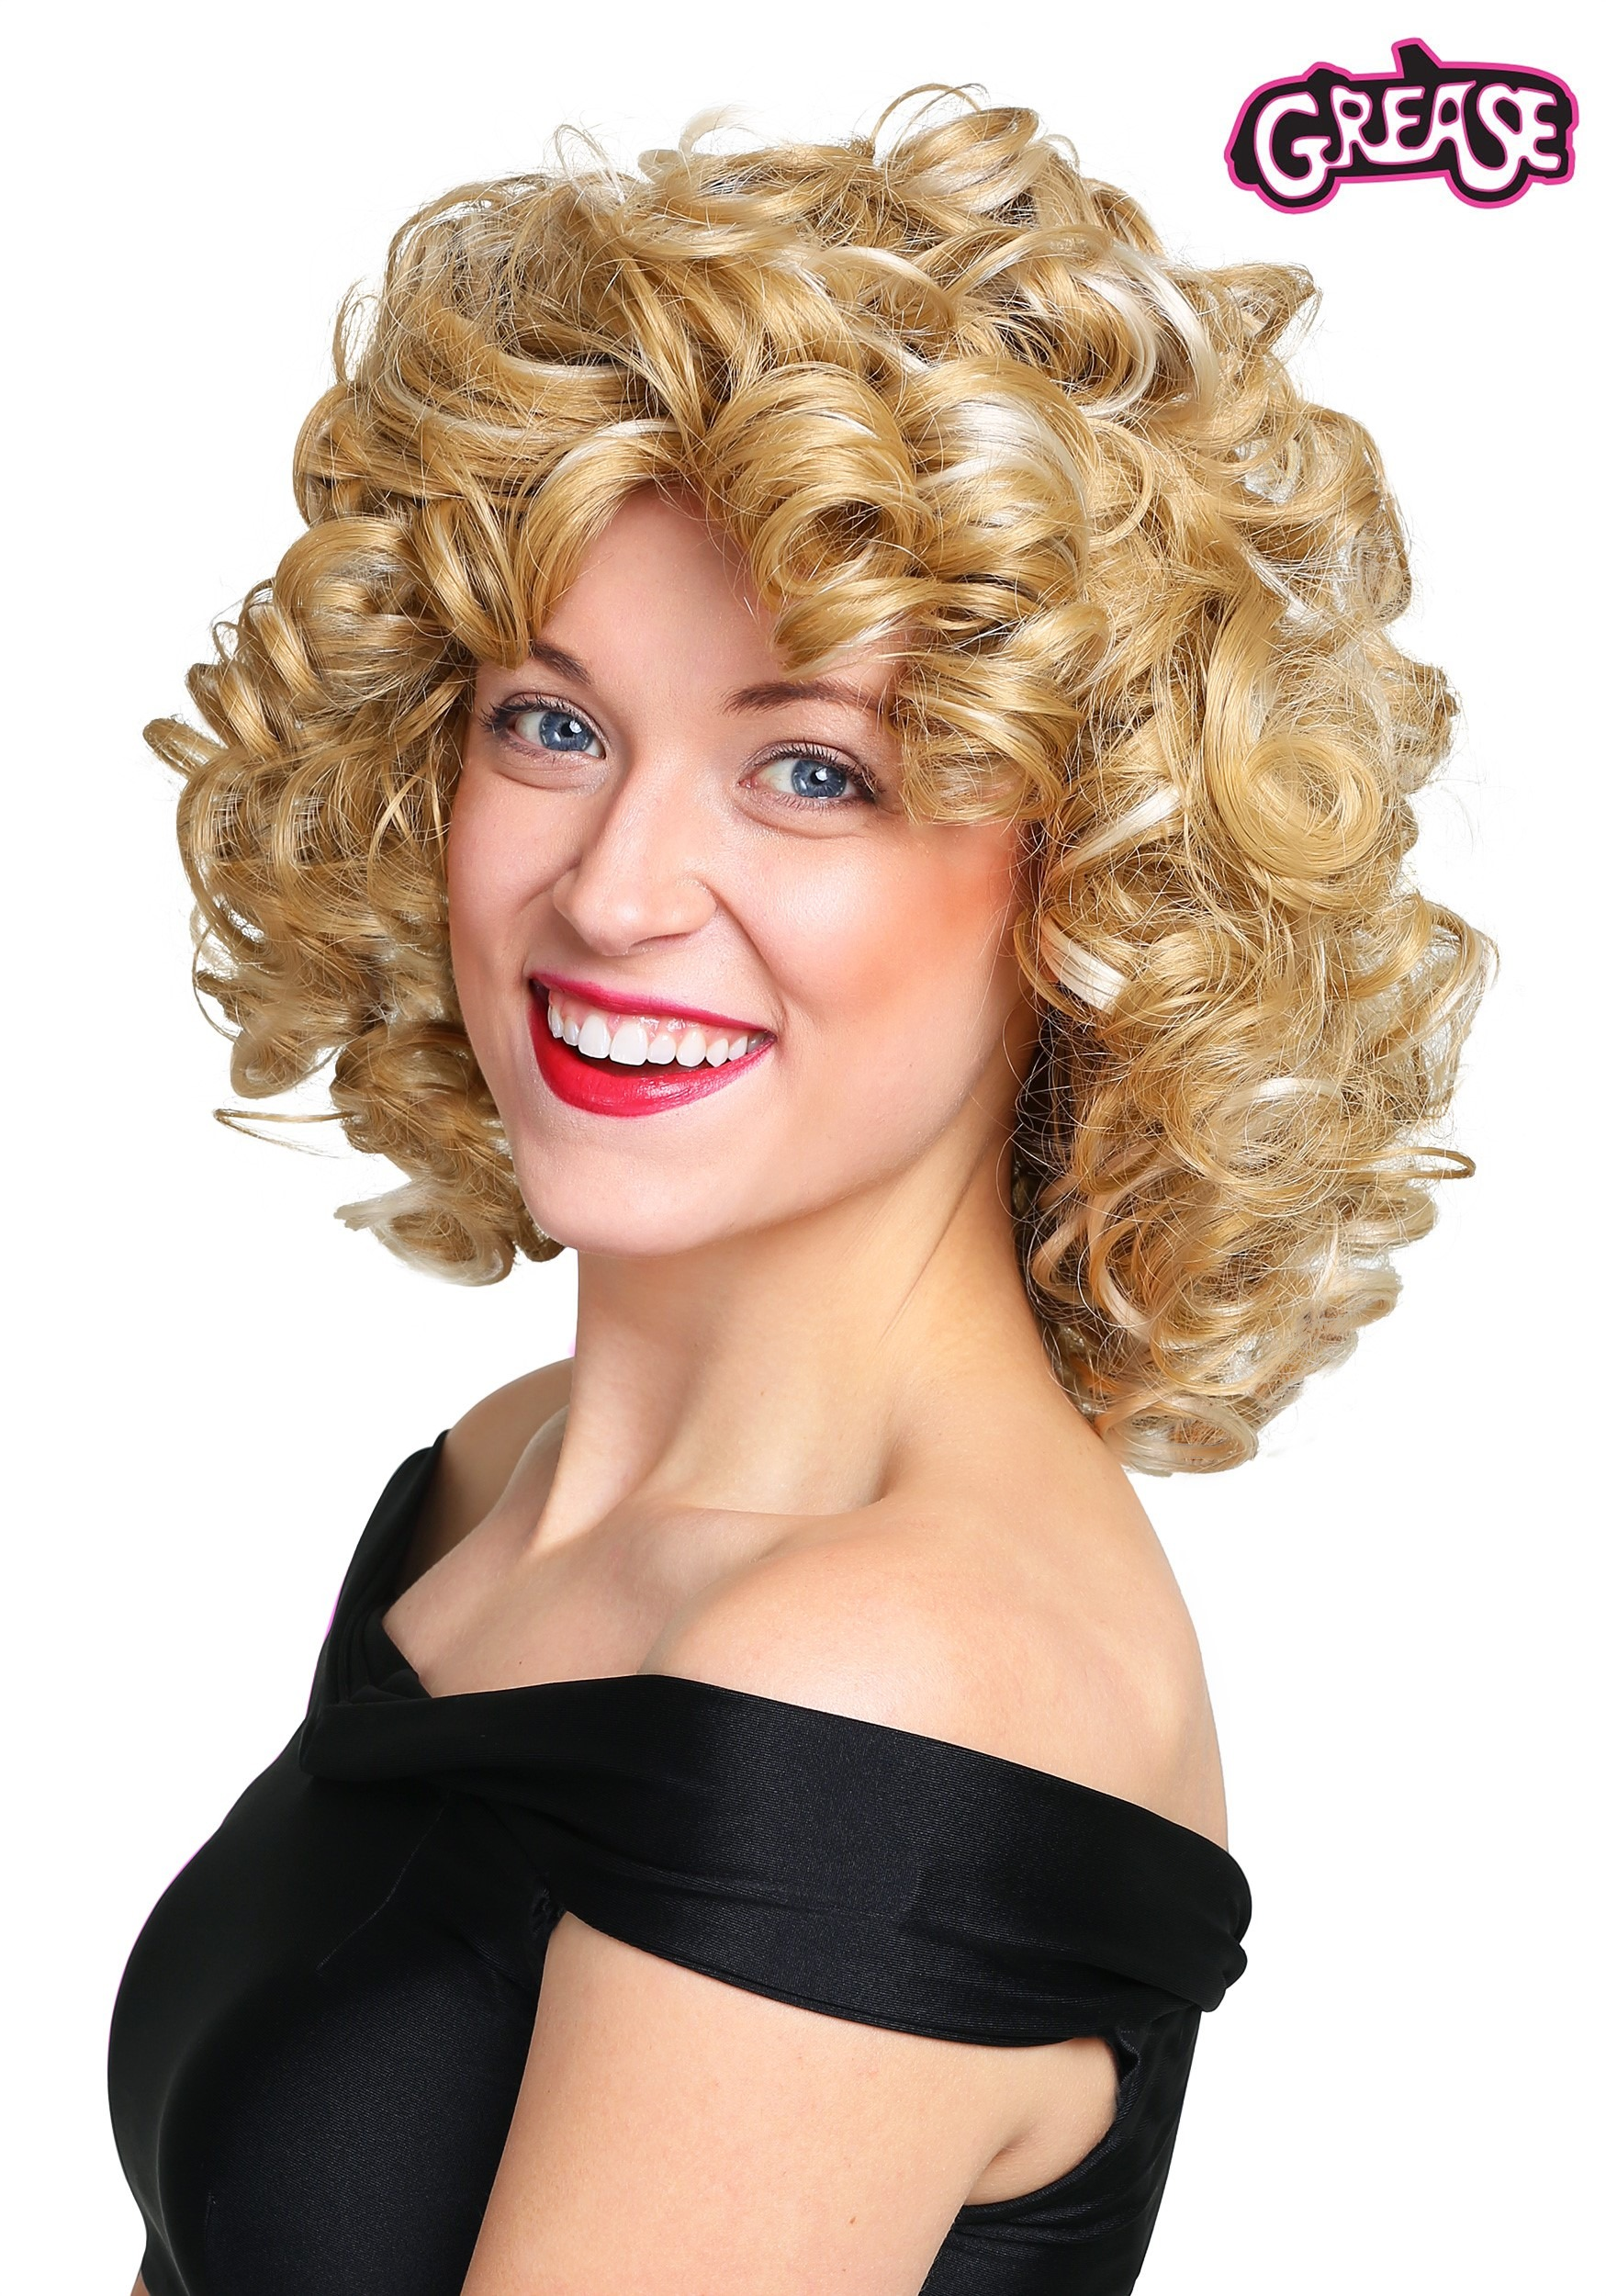 womens-grease-bad-sandy-wig.jpg ea999fefb0